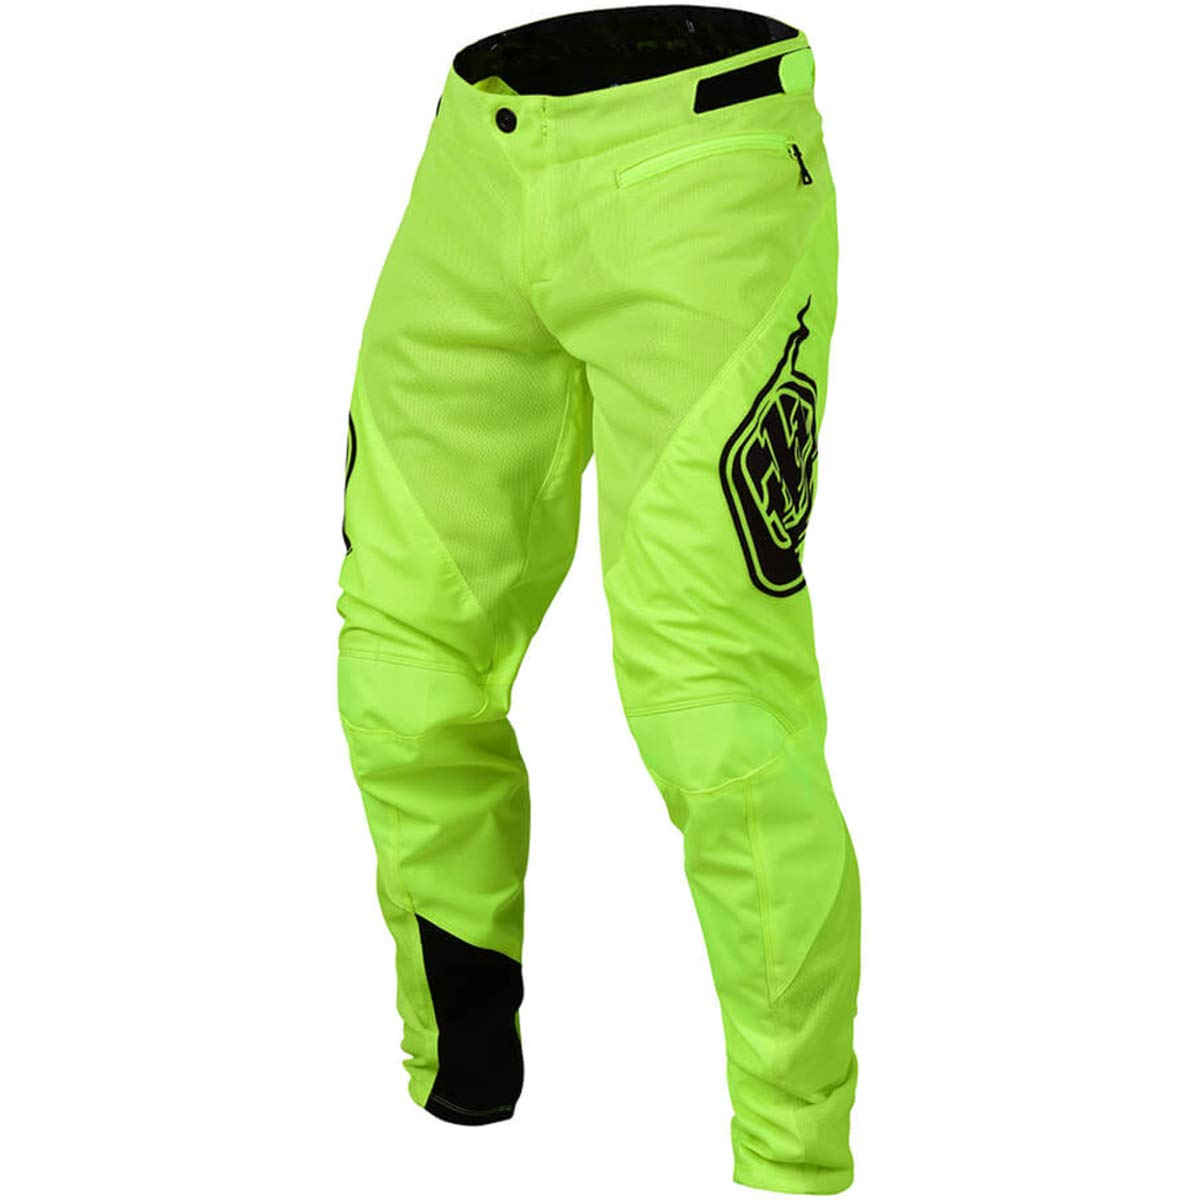 Troy Lee Designs Sprint Solid Youth Off-Road BMX Cycling Pants - Flo Yellow / 28 by Troy Lee Designs